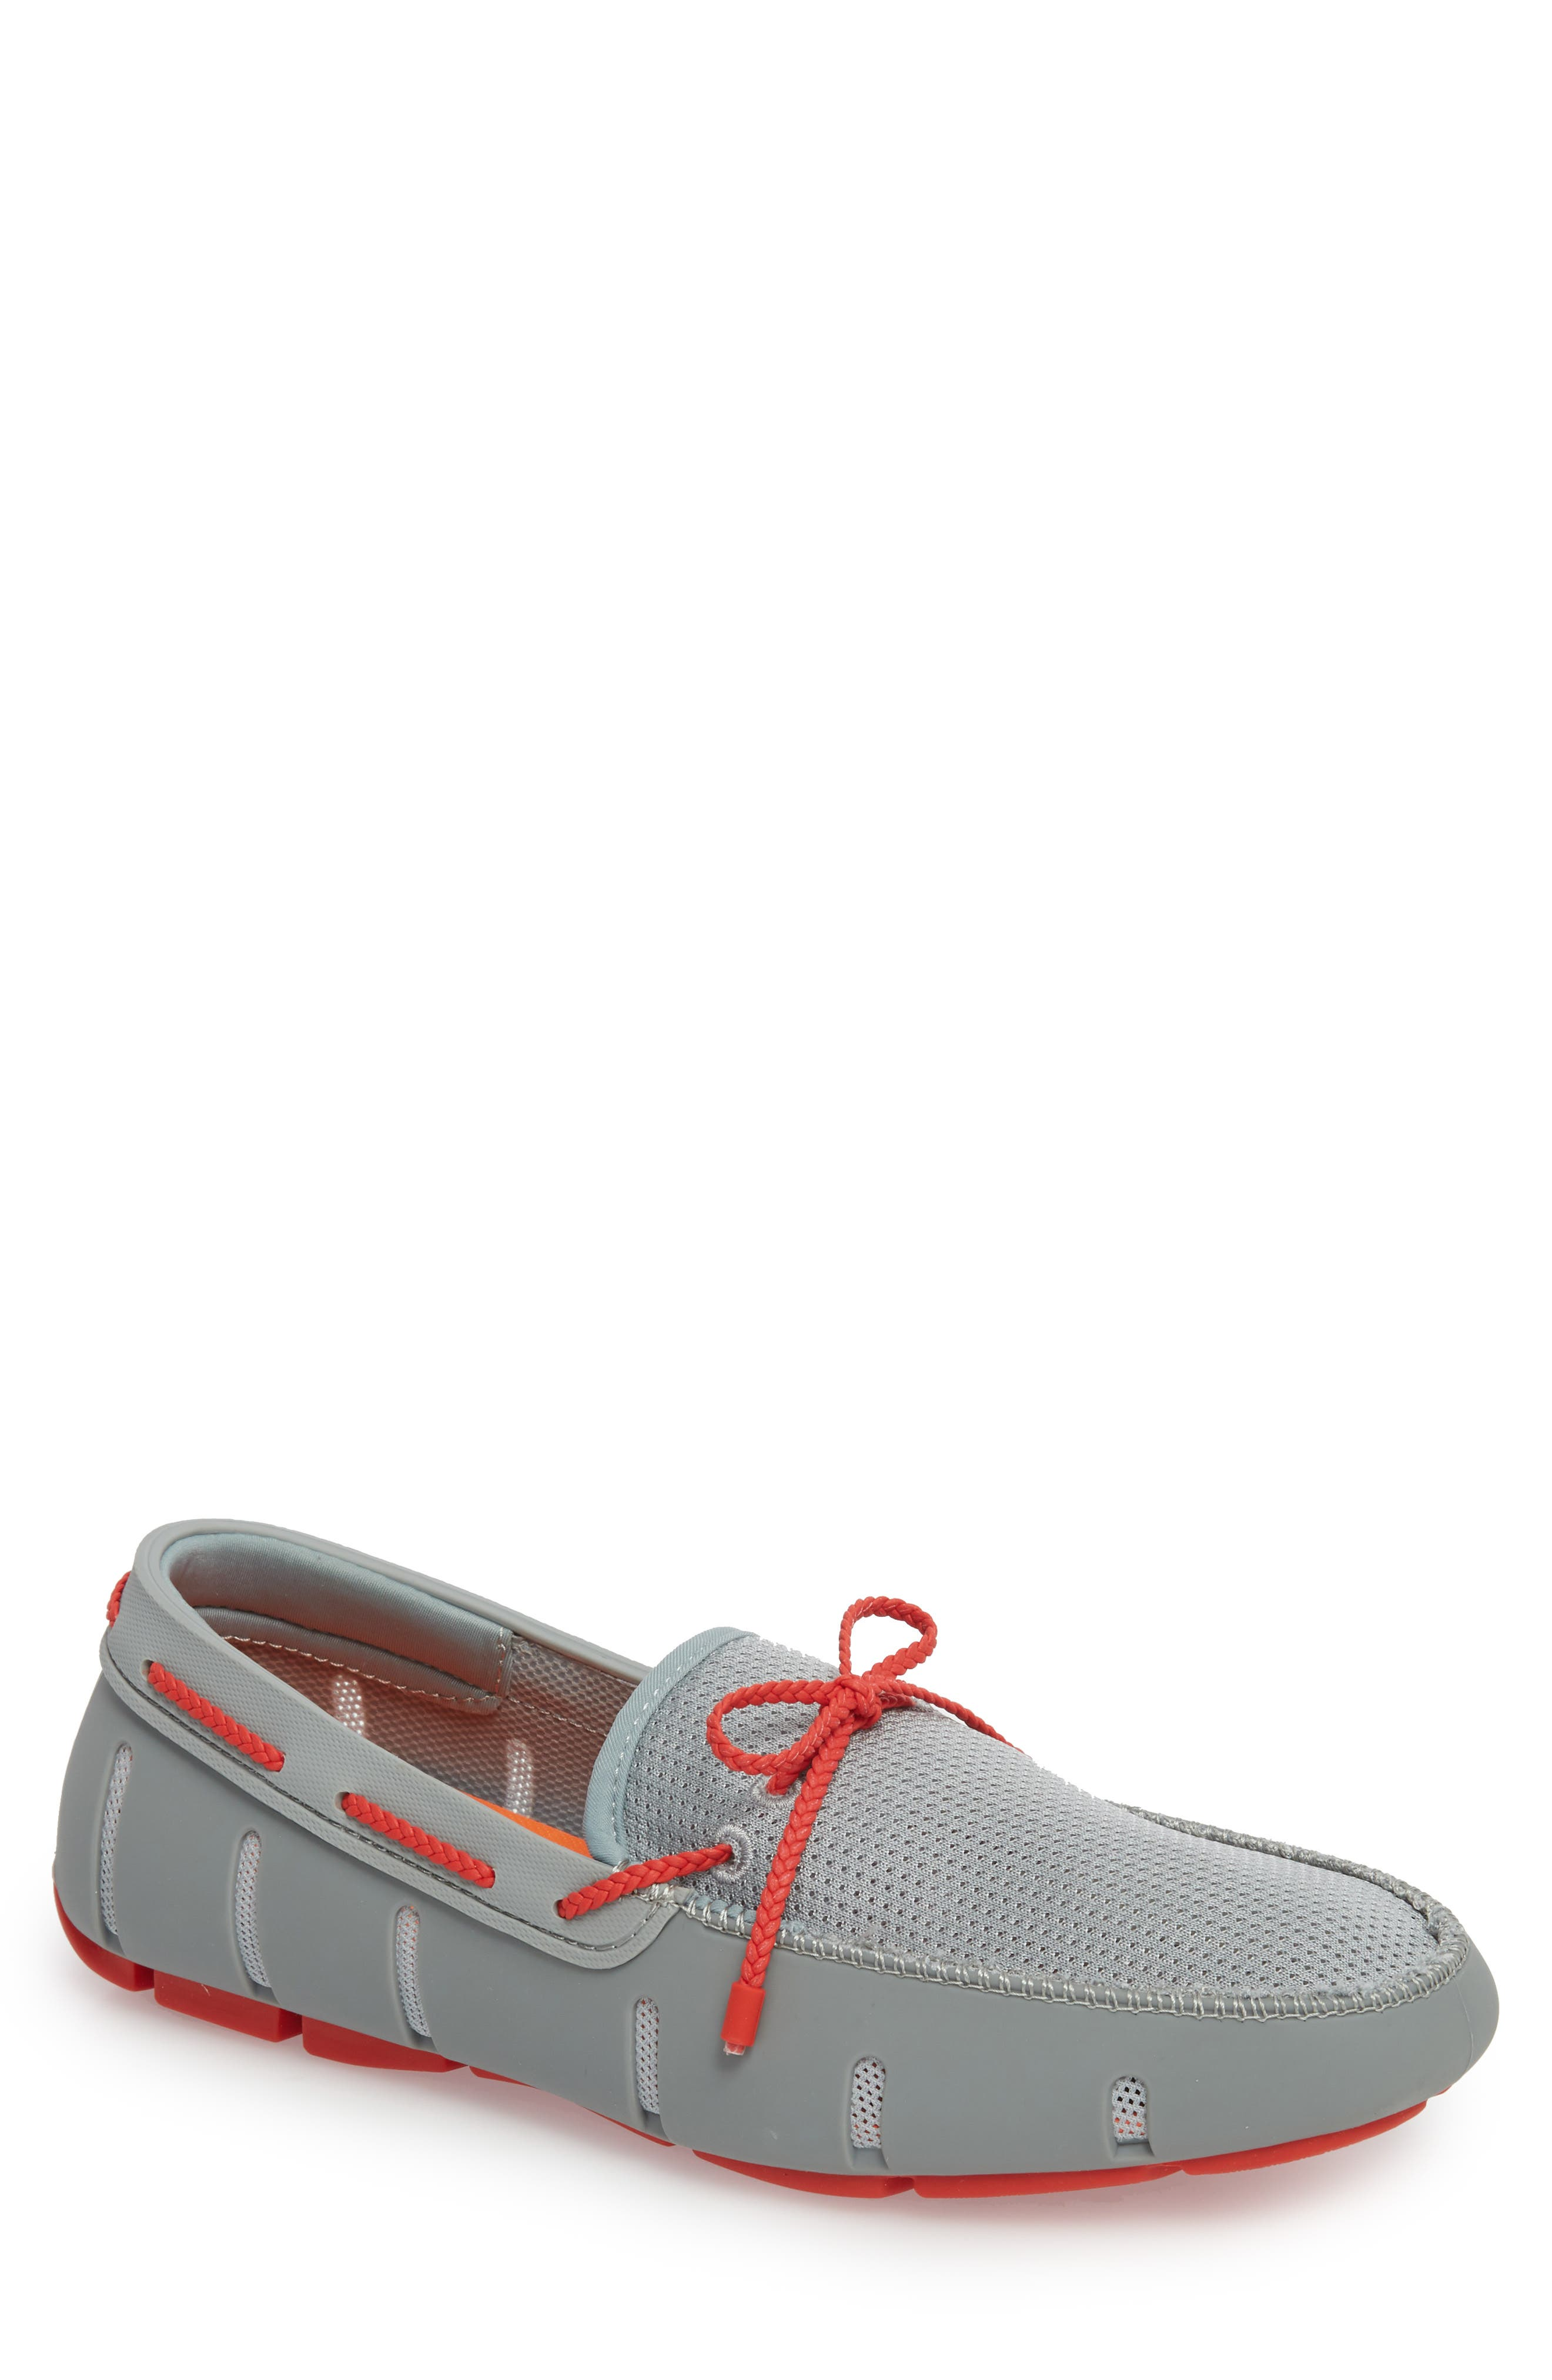 Lace Loafer,                             Main thumbnail 1, color,                             LIMESTONE/ TRAFFIC LIGHT